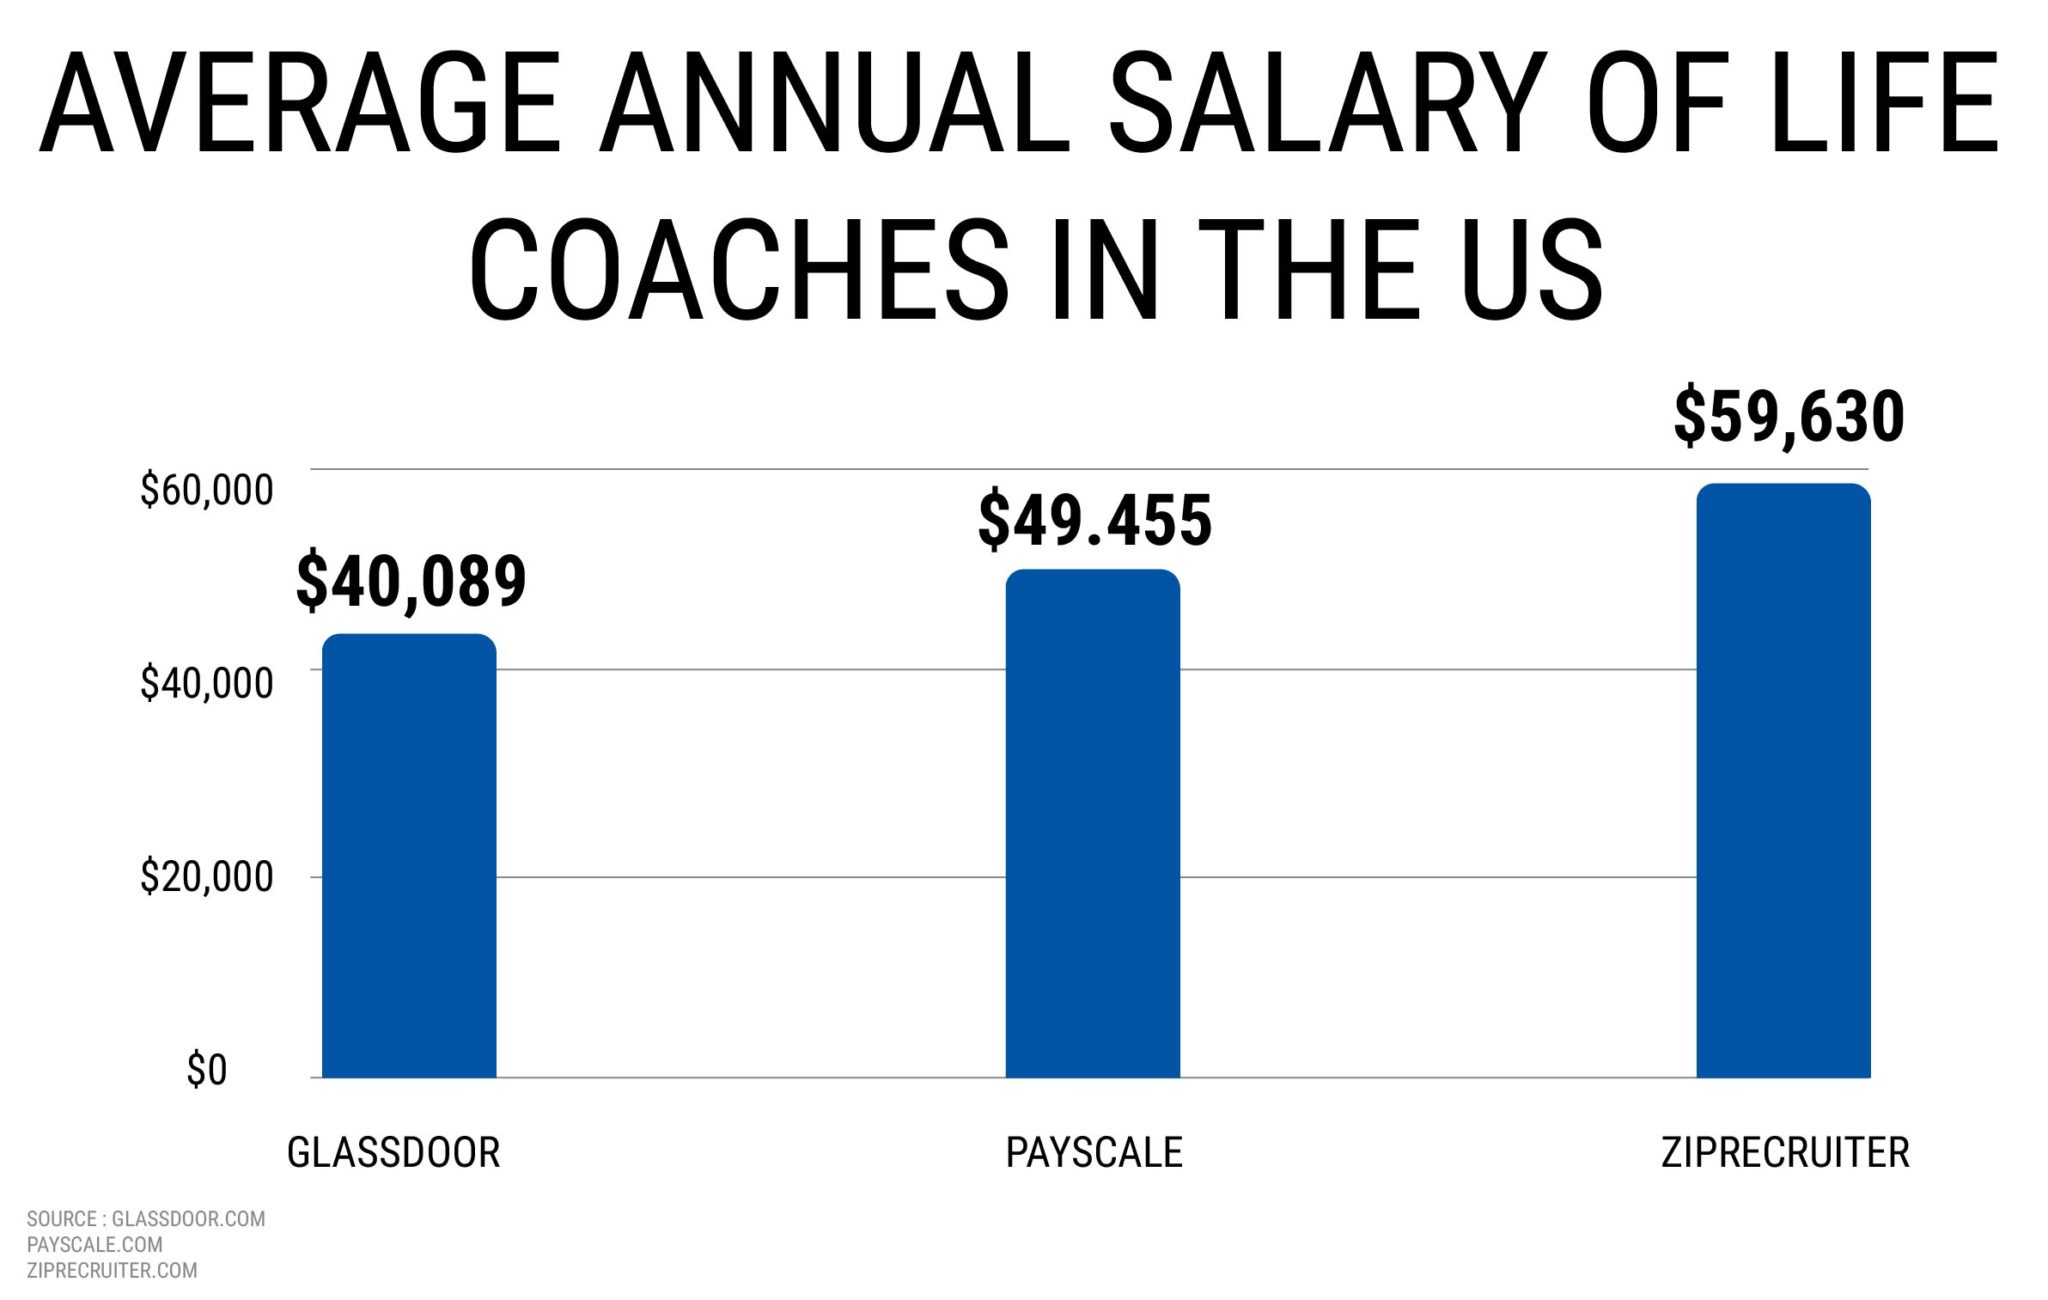 AVERAGE ANNUAL SALARY OF LIFE COACHES IN THE US